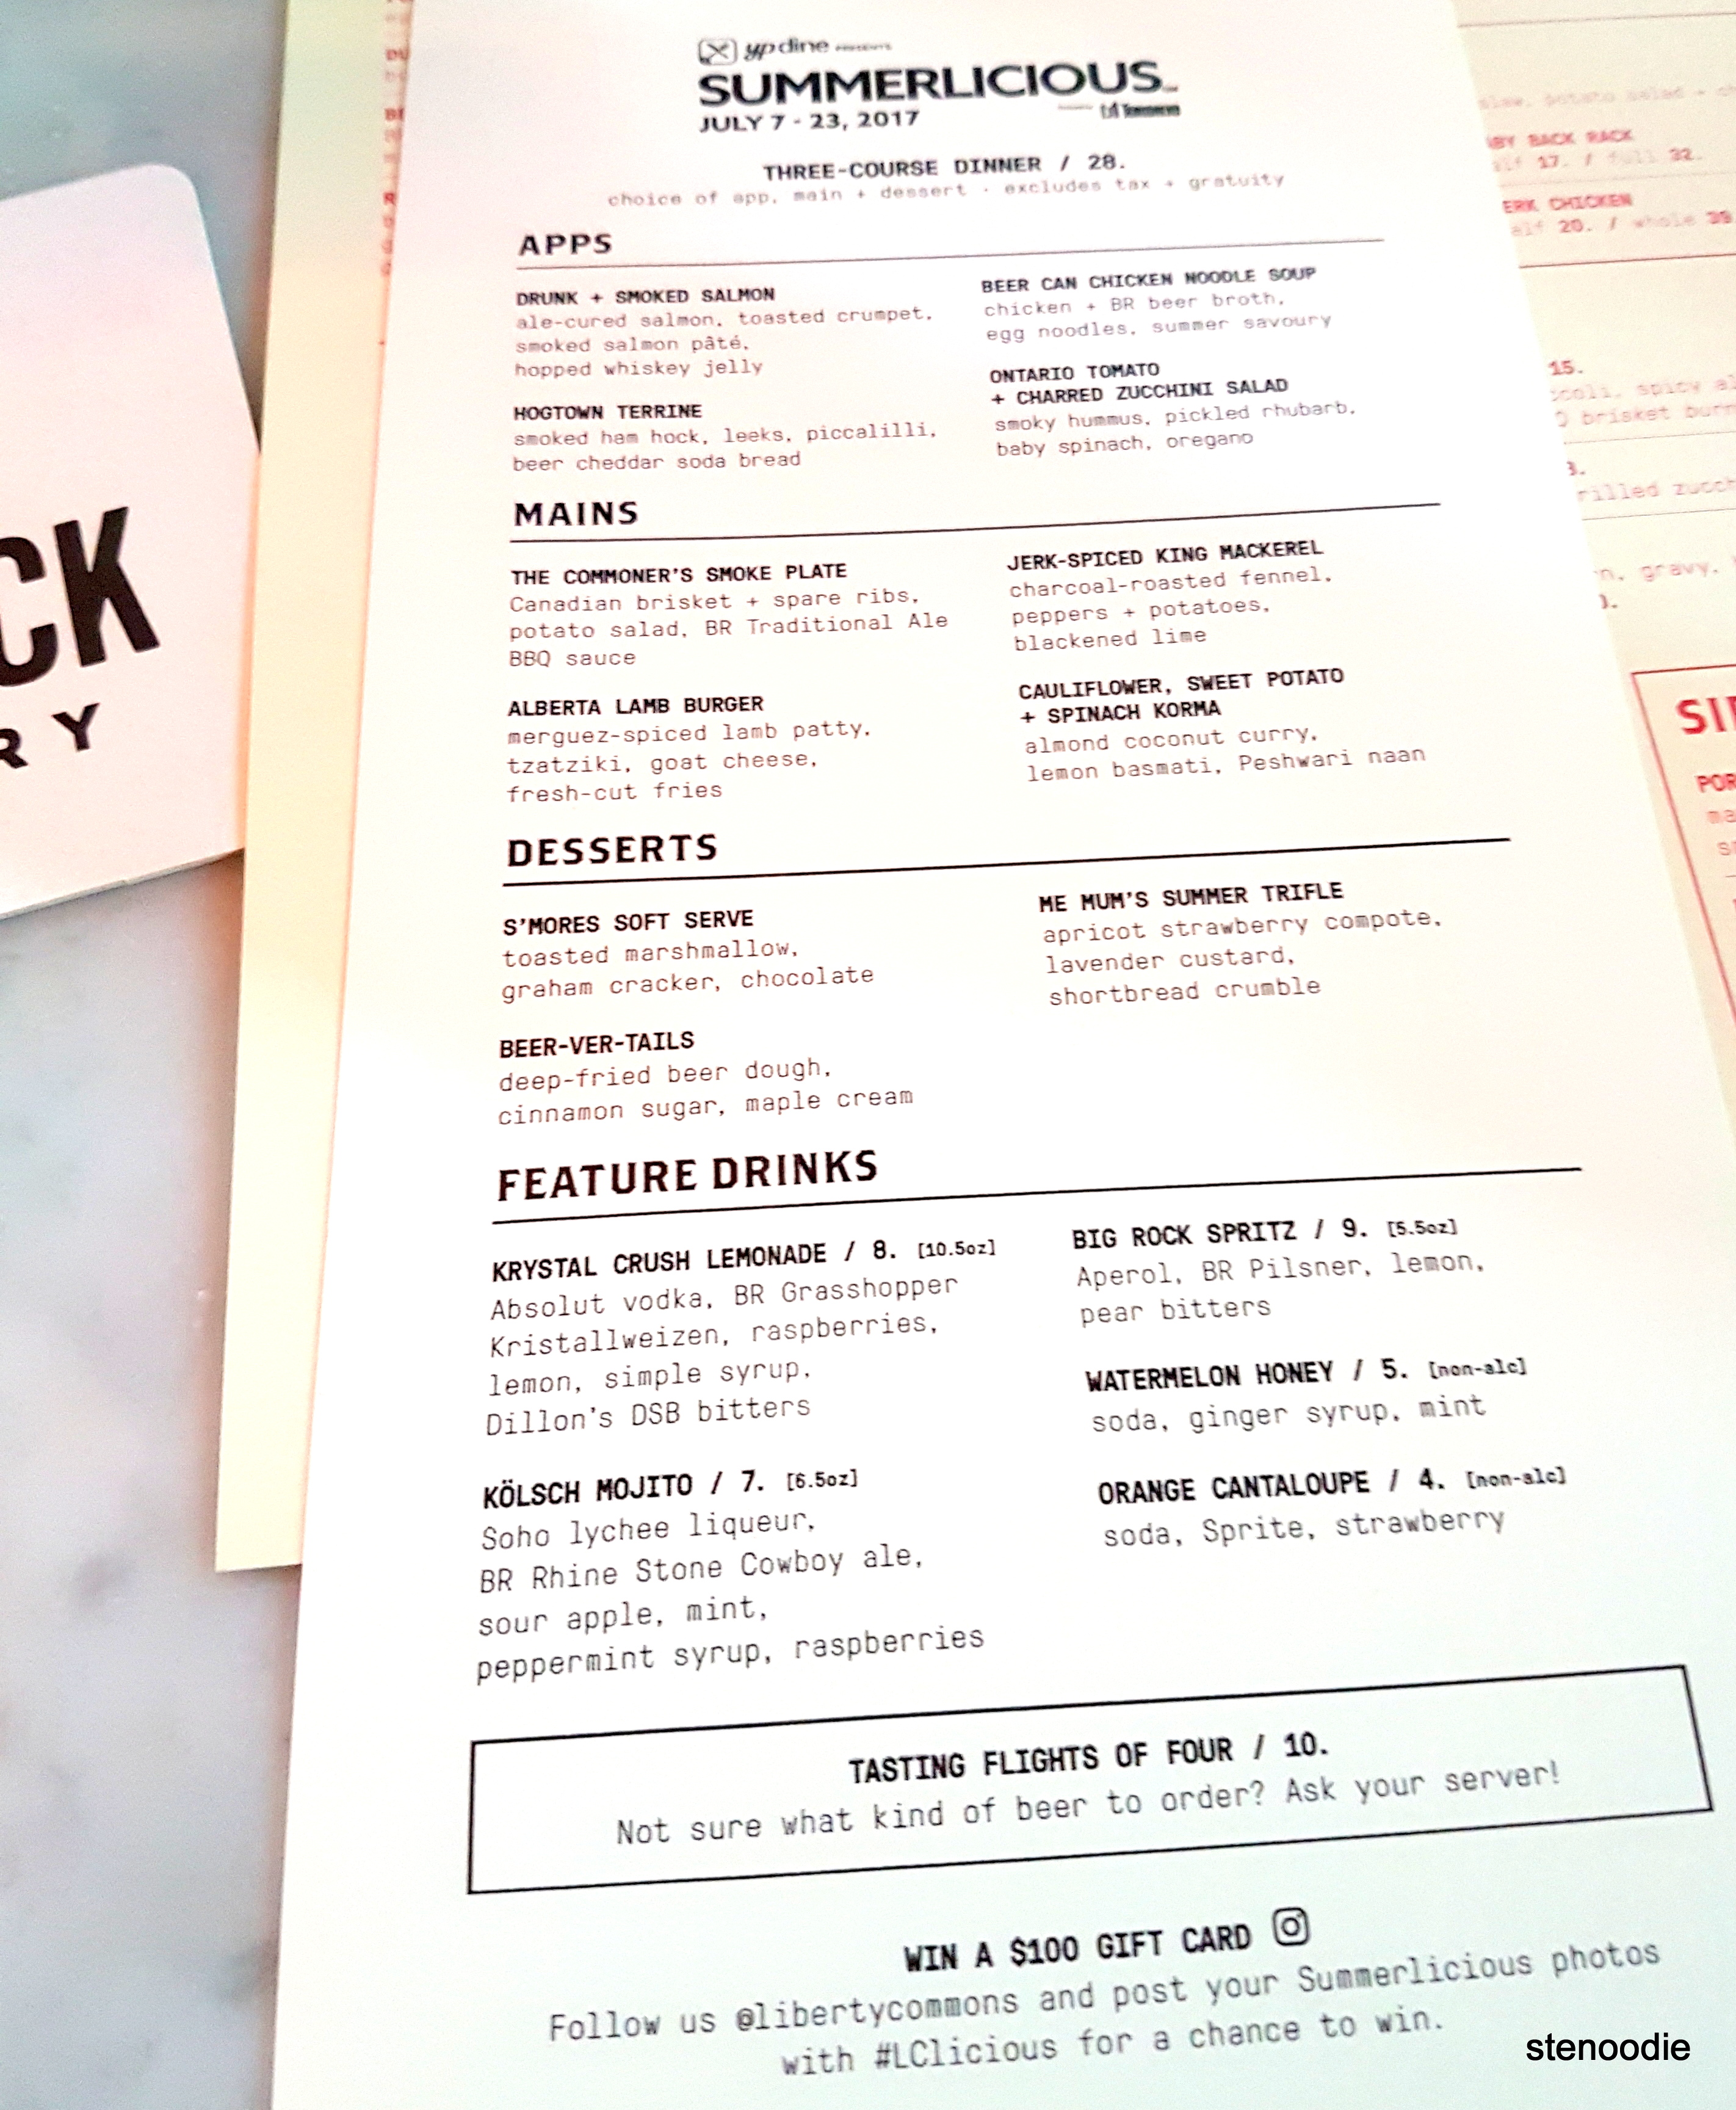 Liberty Commons at Big Rock Brewery Summerlicious 2017 dinner menu